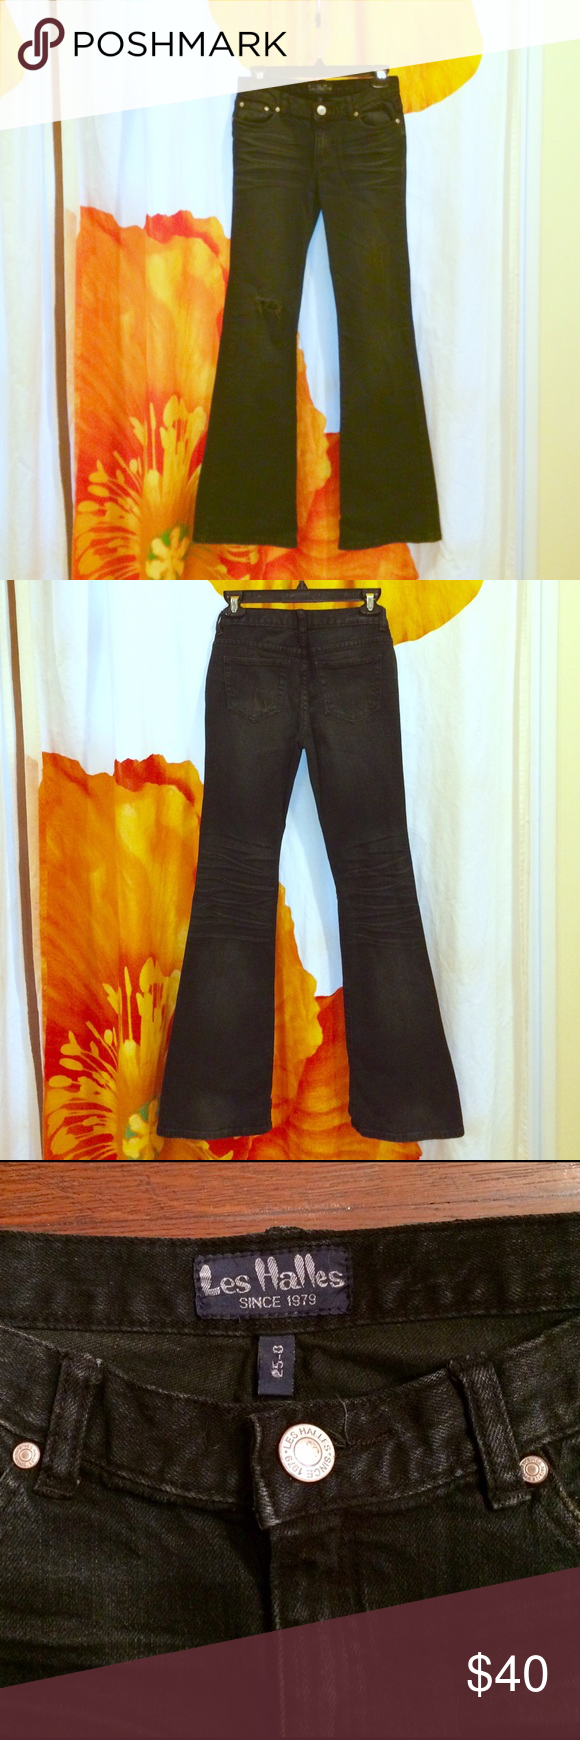 """NWOT iconic Les Halles distressed flare-leg jeans Five-pocket low-rise faded black jeans. Inseam 31"""", rise (front) 7.5"""", rise (back) 12"""", waist 13.75"""" across & 29"""" around, leg 9"""" across at thigh & 9.75"""" at bottom. Zip fly with button. Hole on right leg at knee, distressed on left thigh & back pocket. Never worn and I've finally admitted I'll never be at my fighting weight again so I'm letting them go. Les Halles Jeans Flare & Wide Leg"""